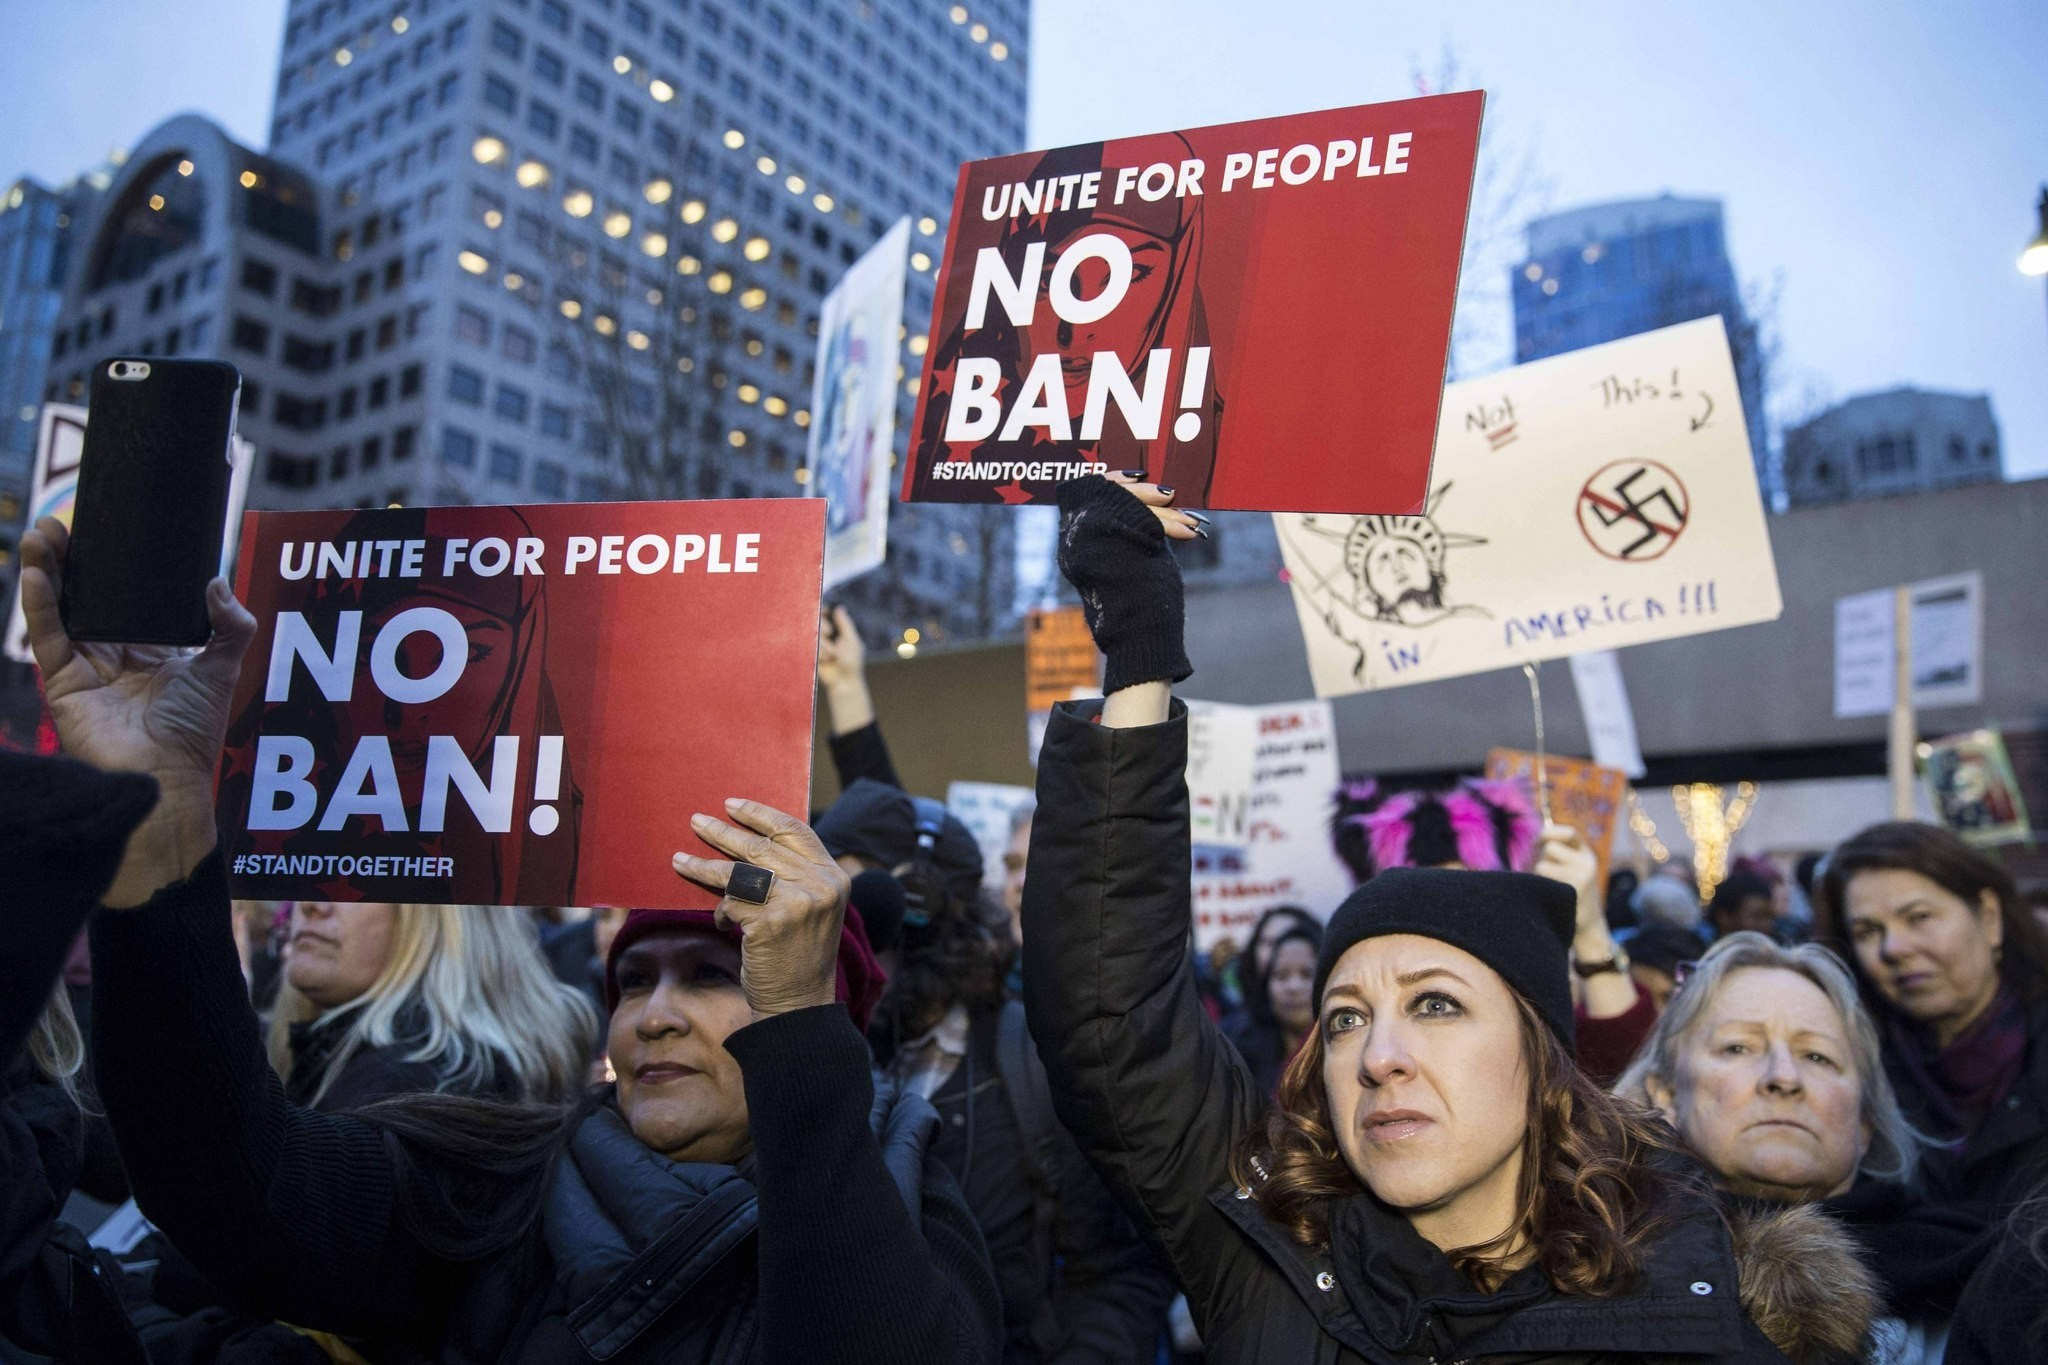 Protesters holding up signs in a demonstration against U.S. President Donald Trumpu2019s executive order banning Muslims from certain countries, Seattle, Jan. 29.